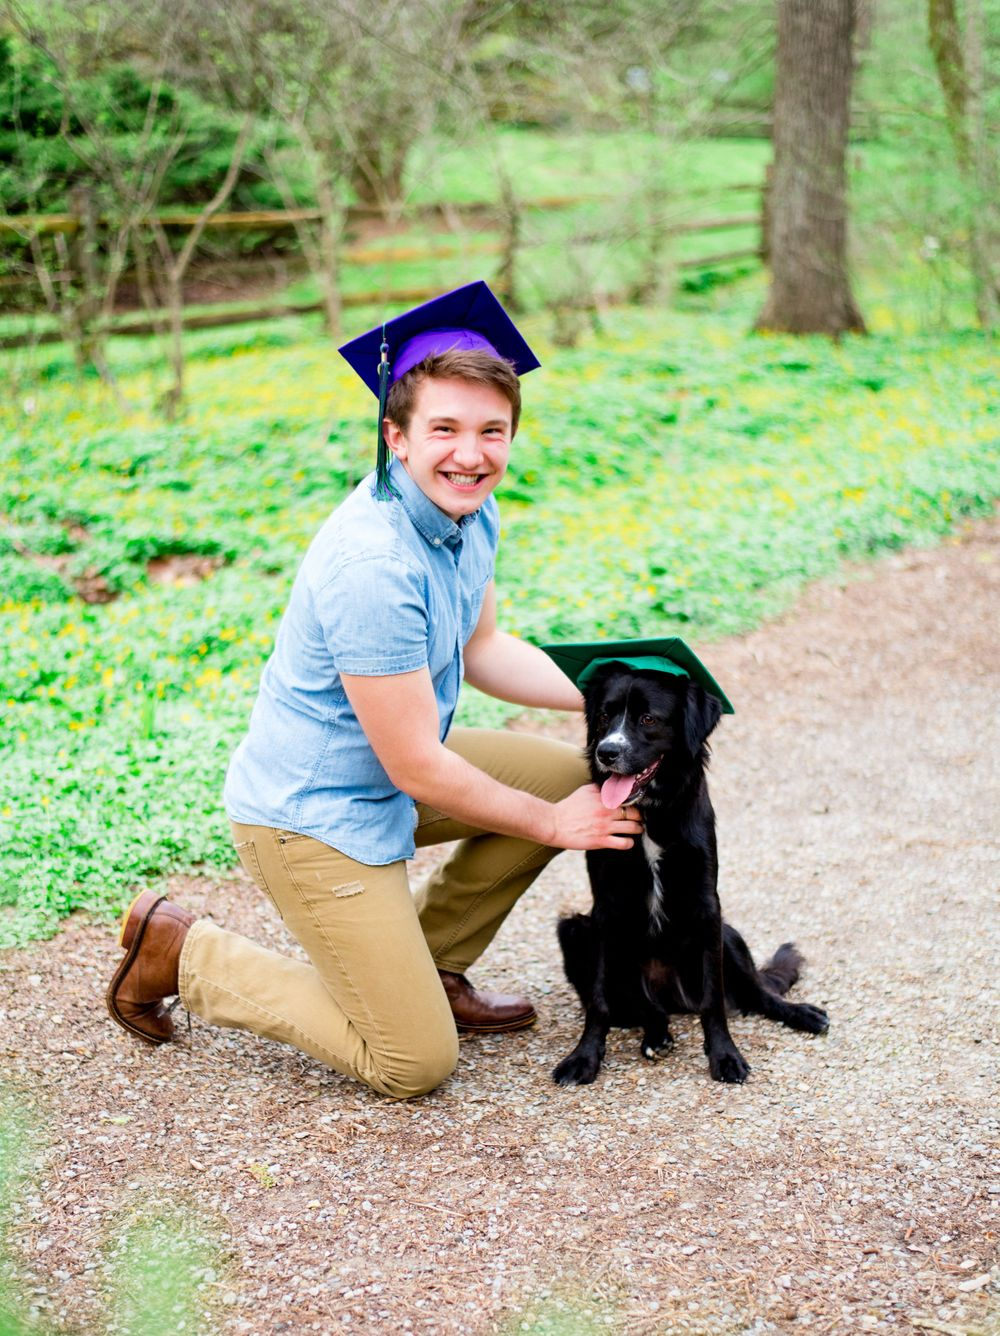 high school senior boy in denim shirt and khaki pants and a graduation cap kneeling to pet his dog in a graduation cap